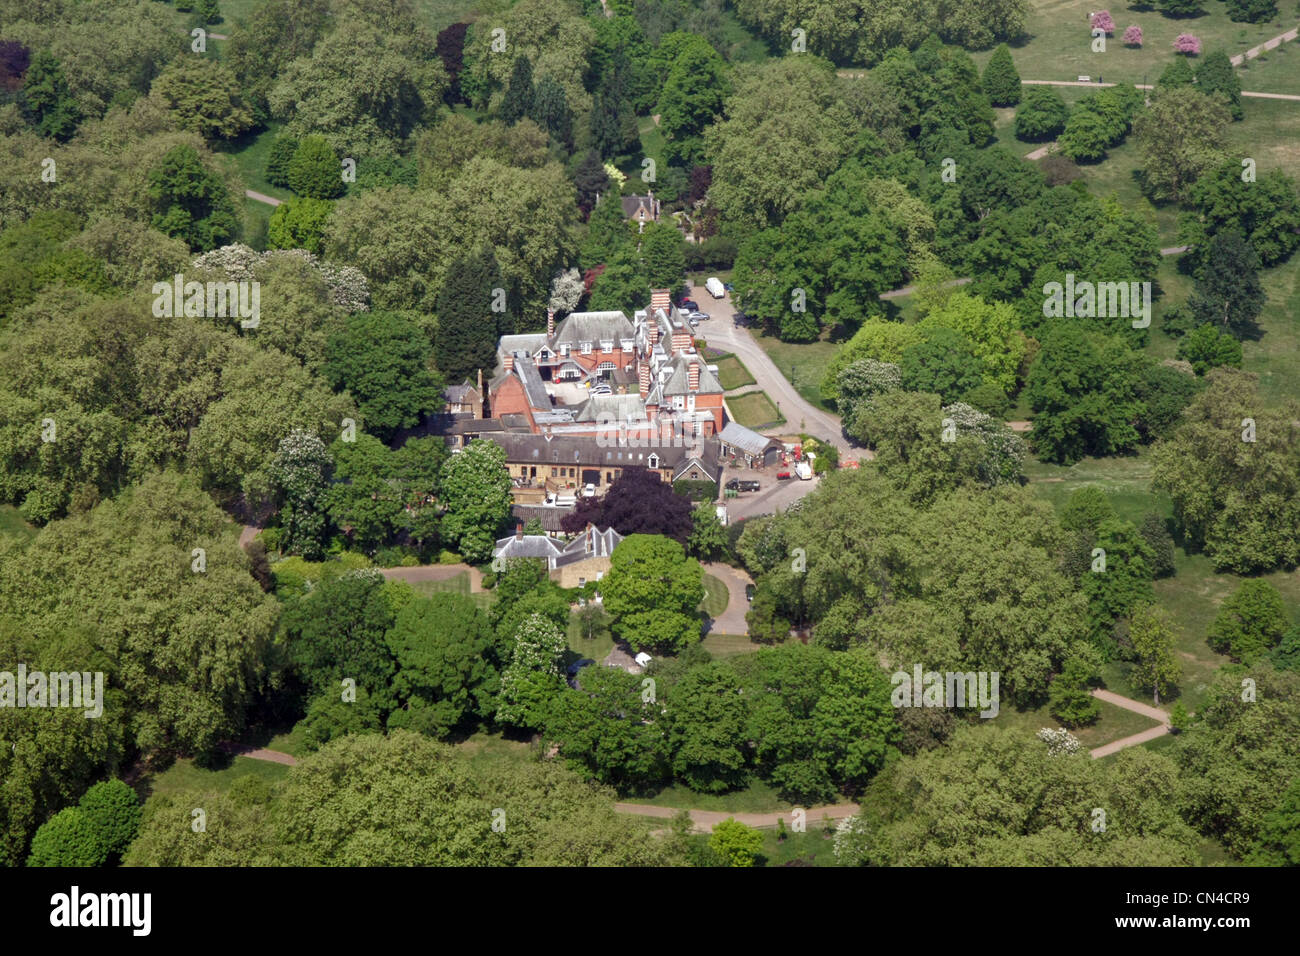 aerial view of the Ranger's Lodge & Ranger's Cottage in Hyde Park, London - Stock Image